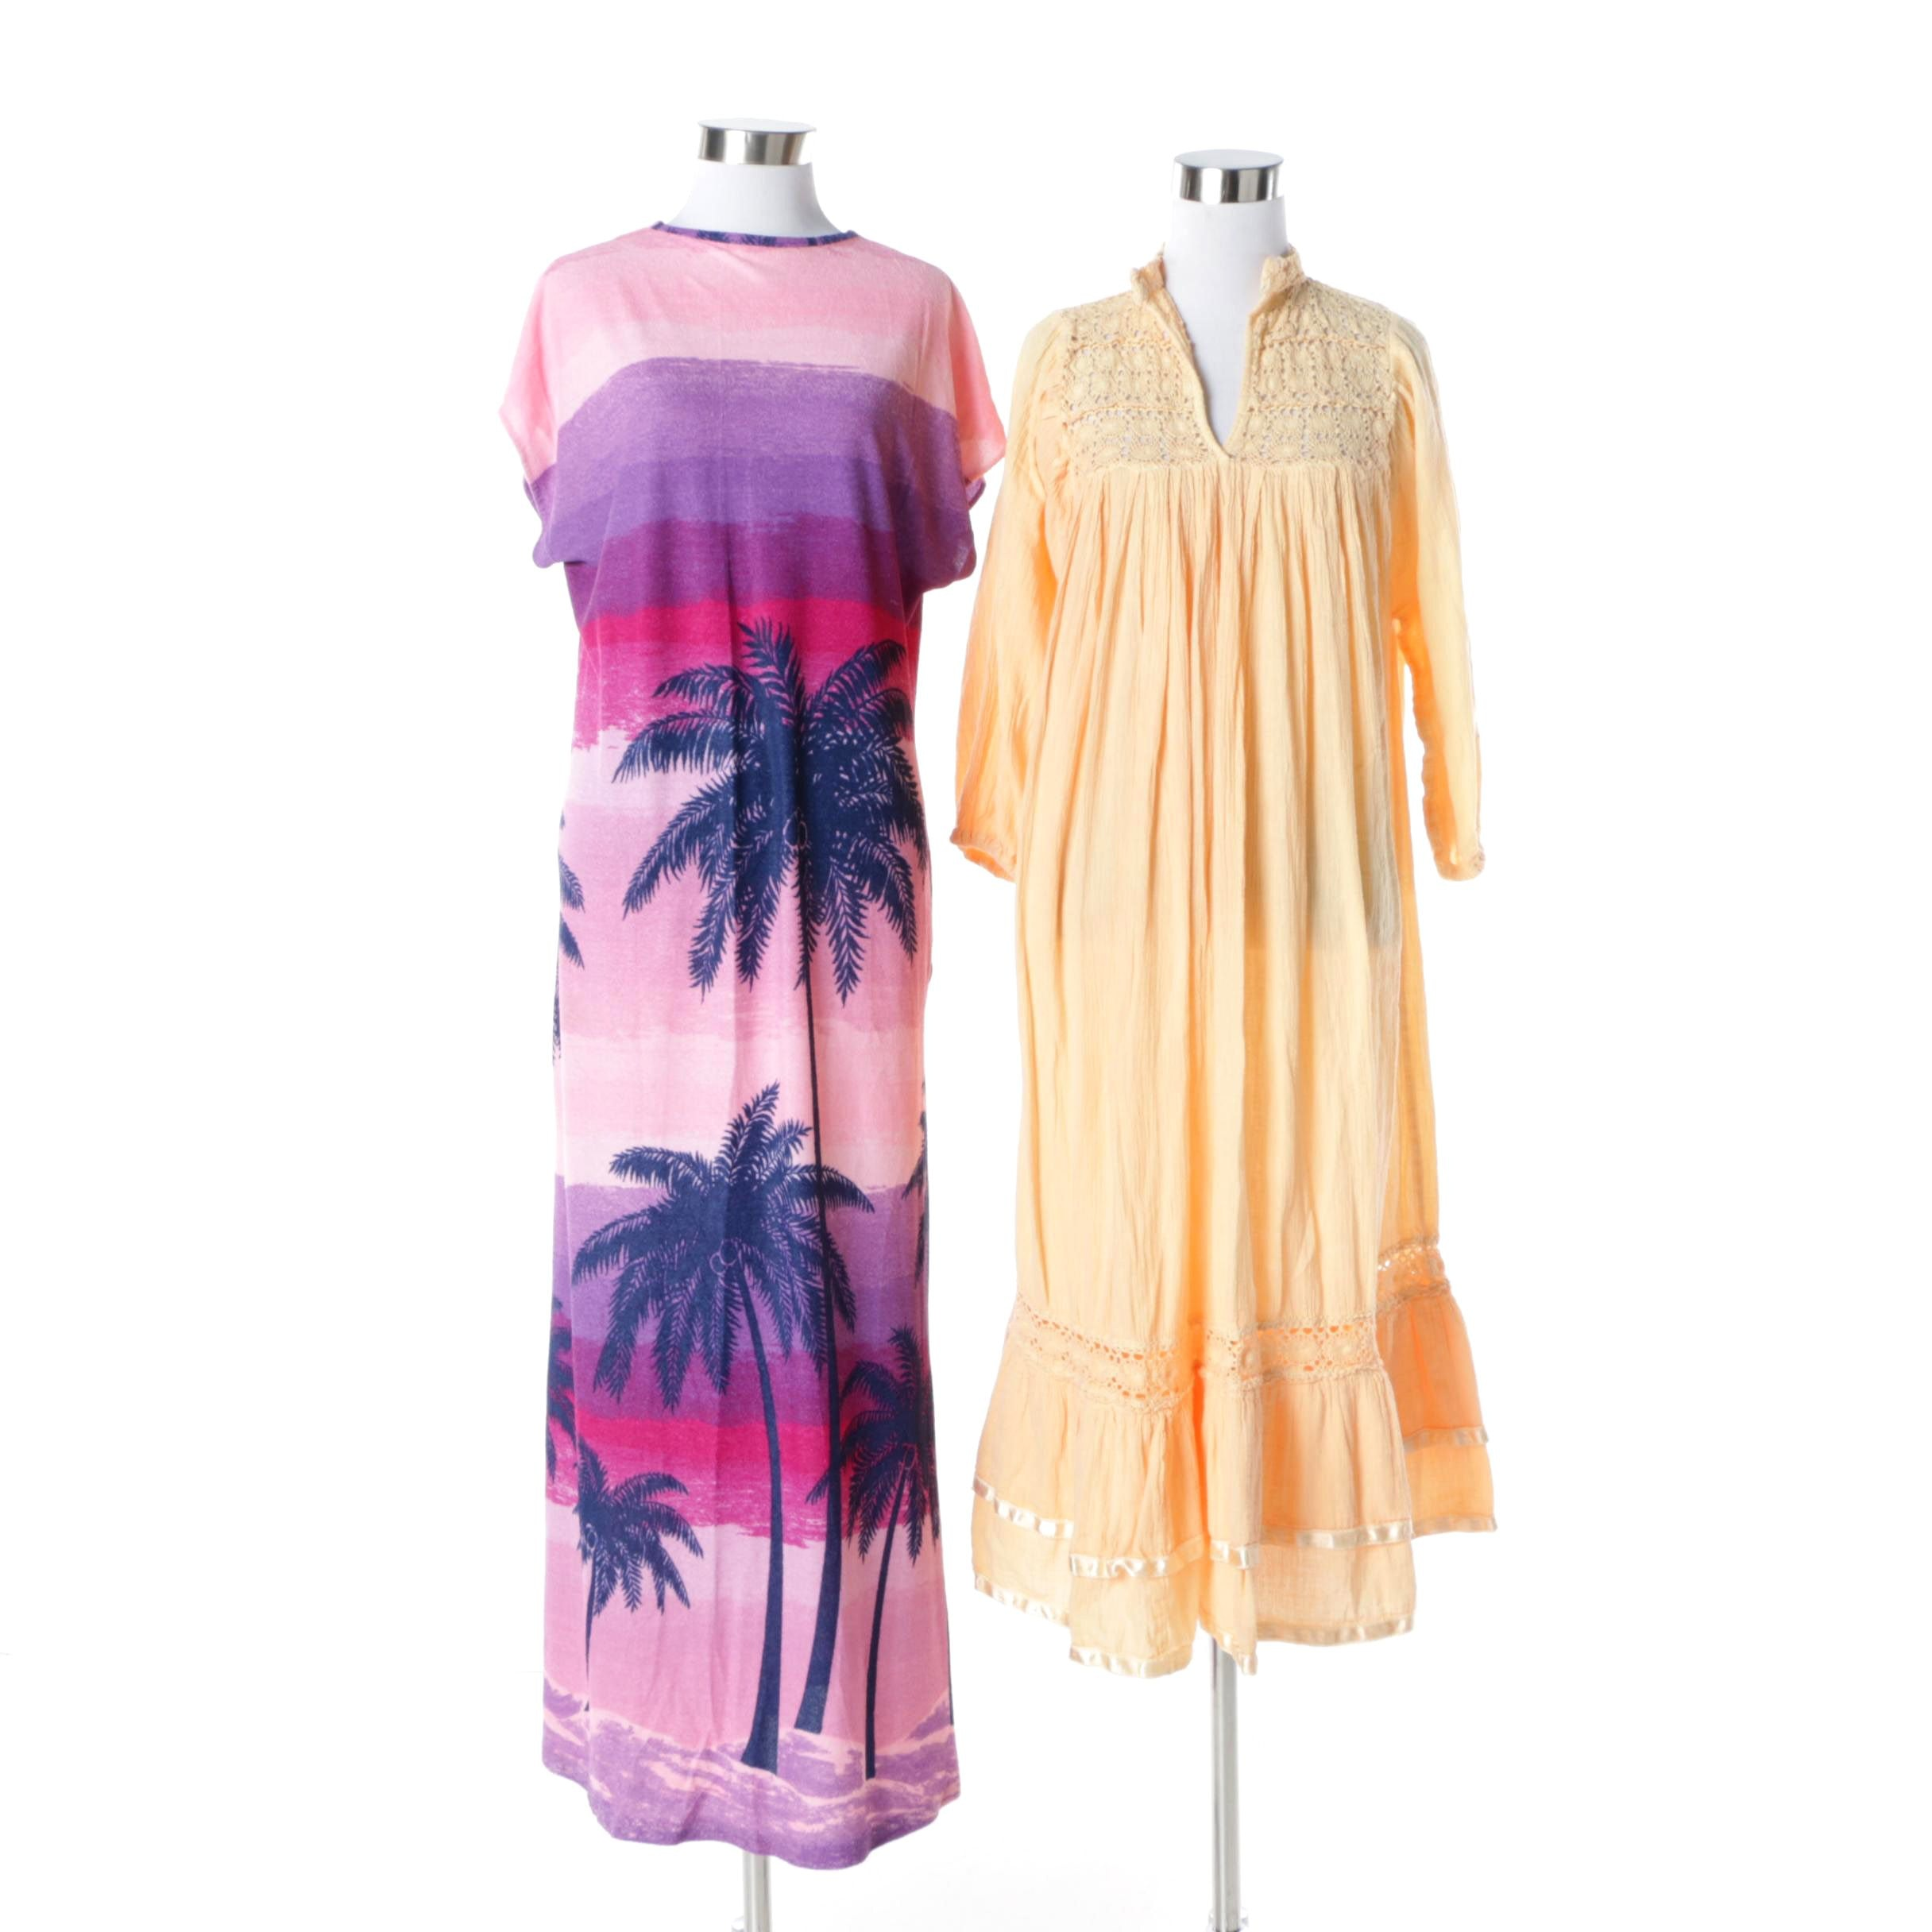 Women's Vintage Casual Dresses